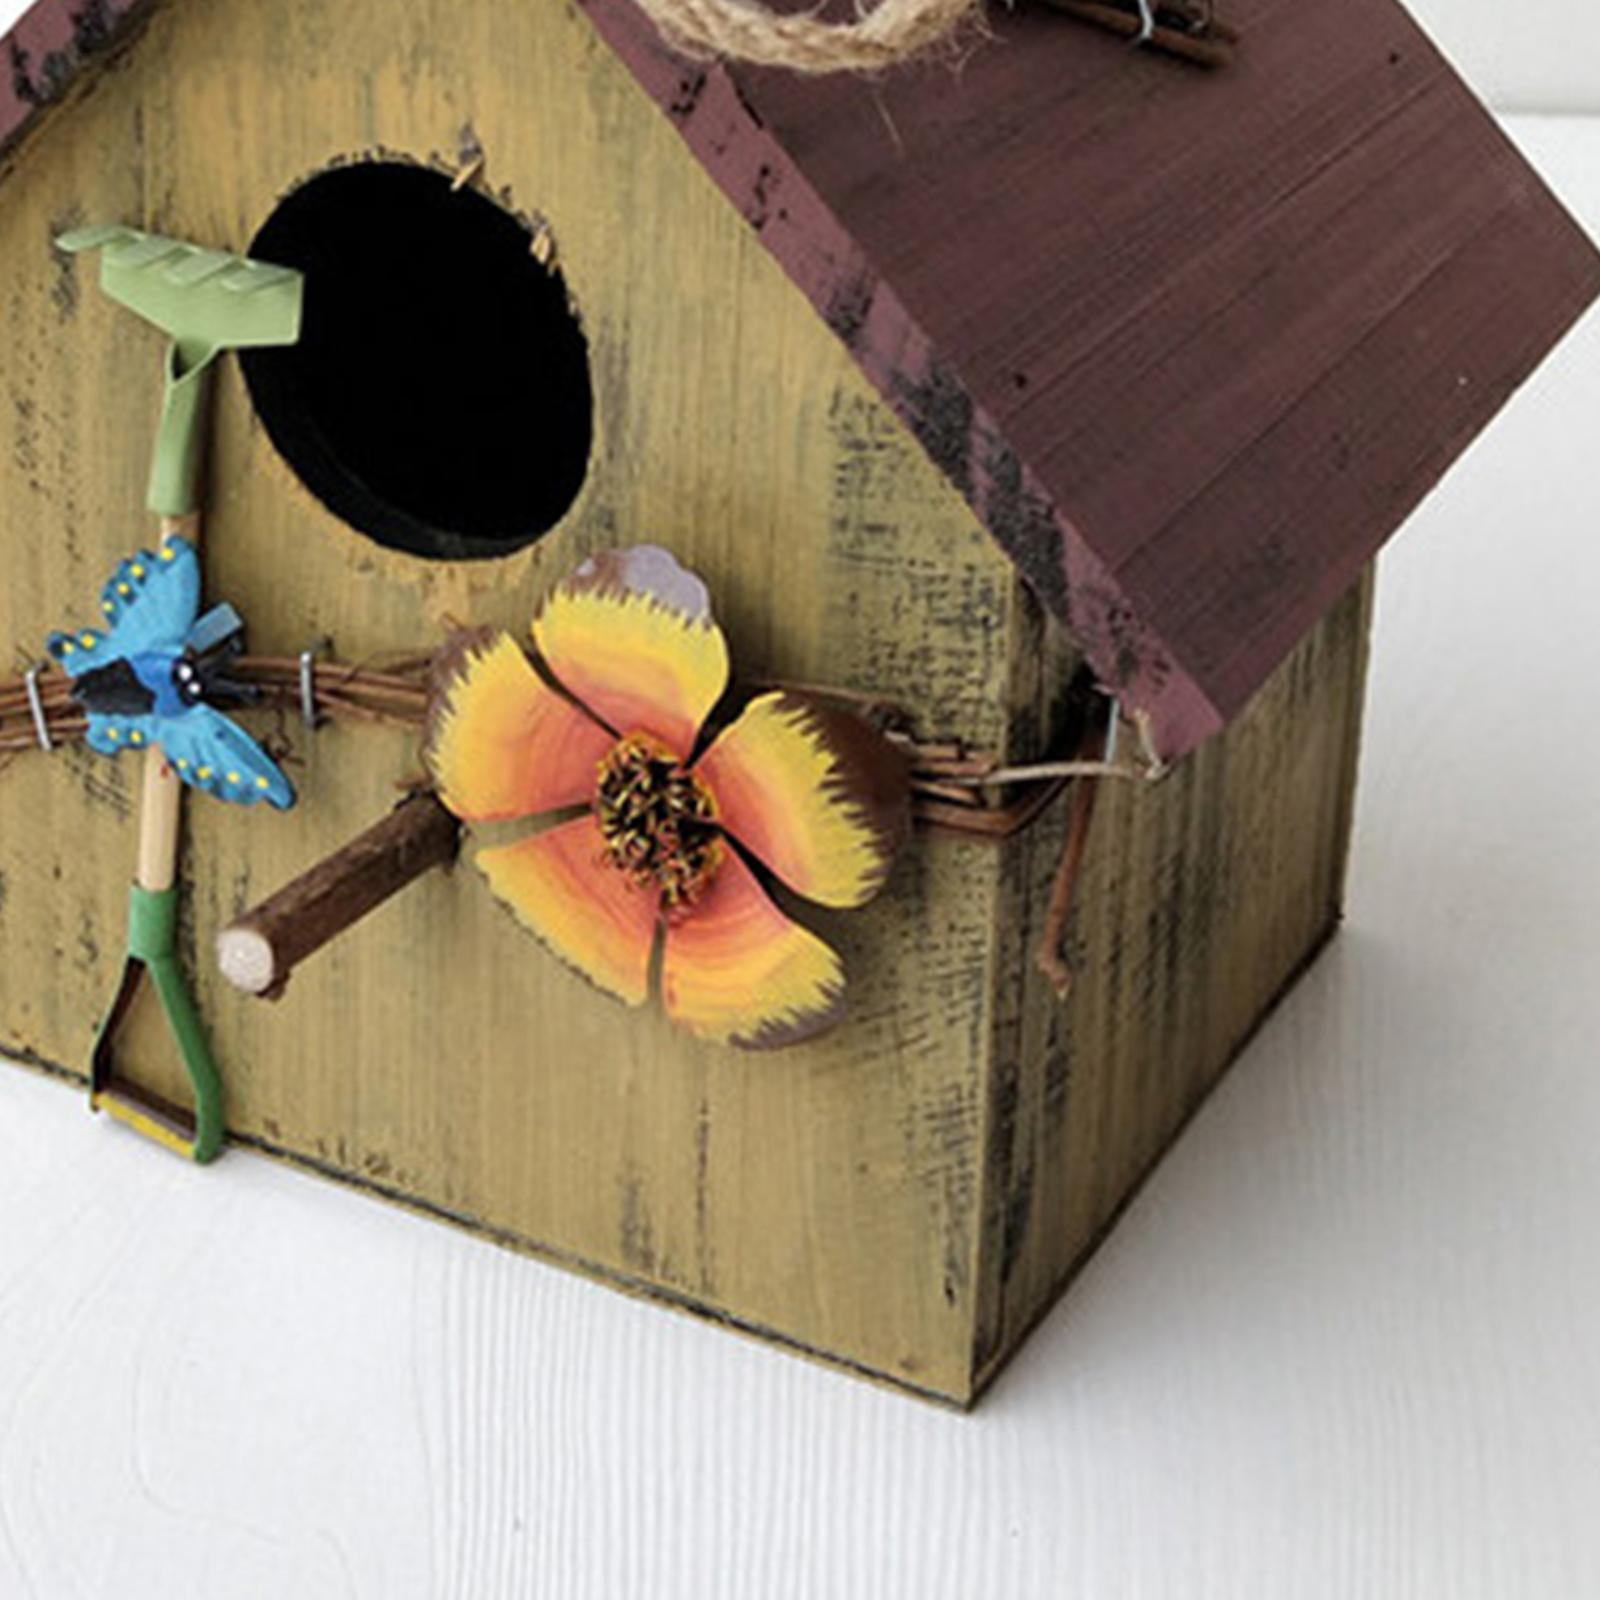 thumbnail 4 - Antique Hand Painted Wood Birdhouse Decorative Outdoor Bird House Garden